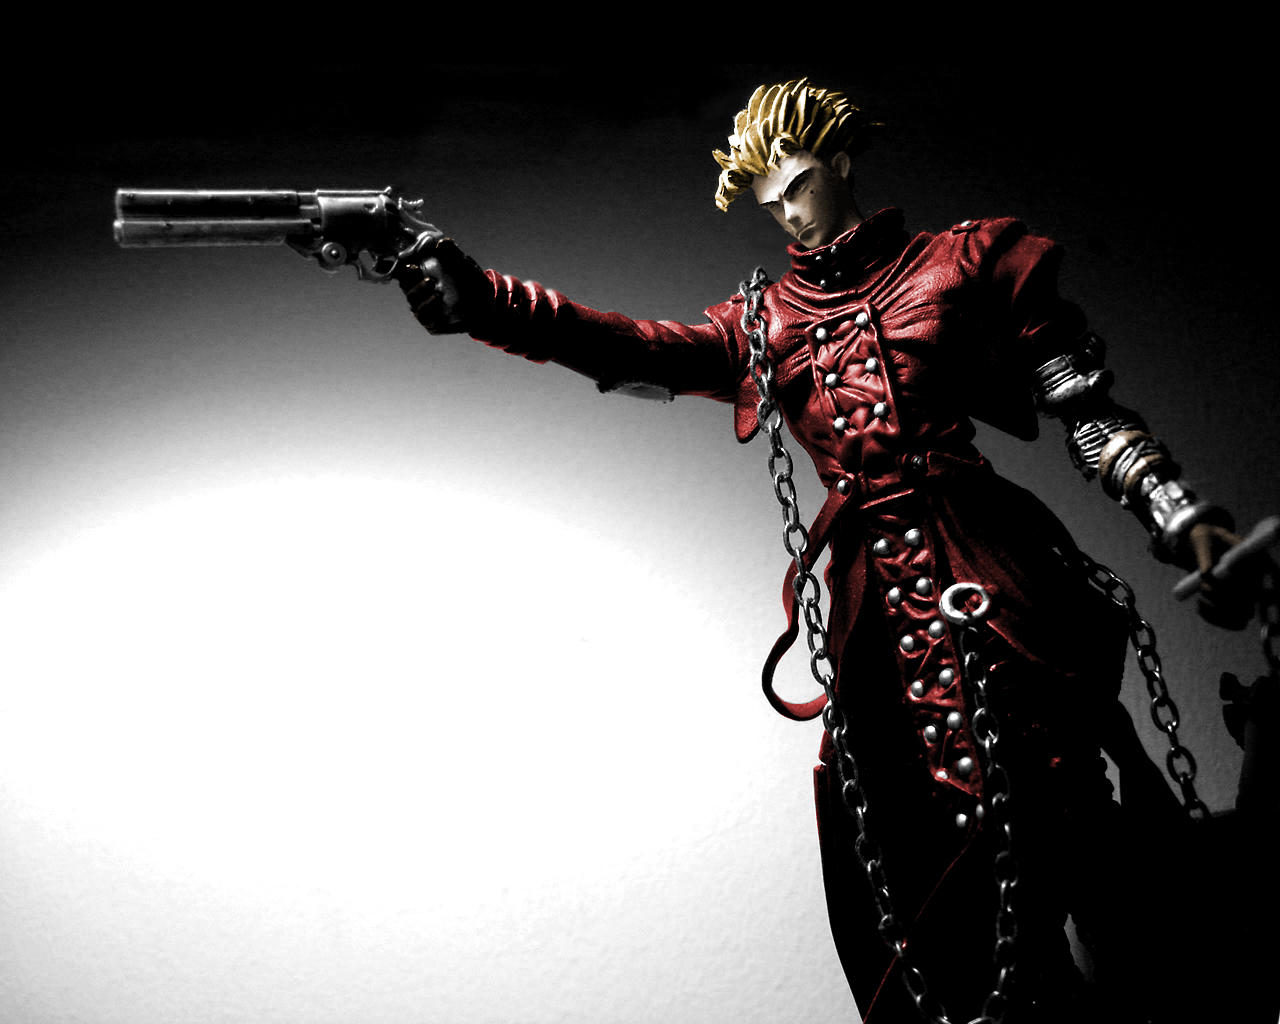 Vash the Stampede - v.3 by DjG-Wp